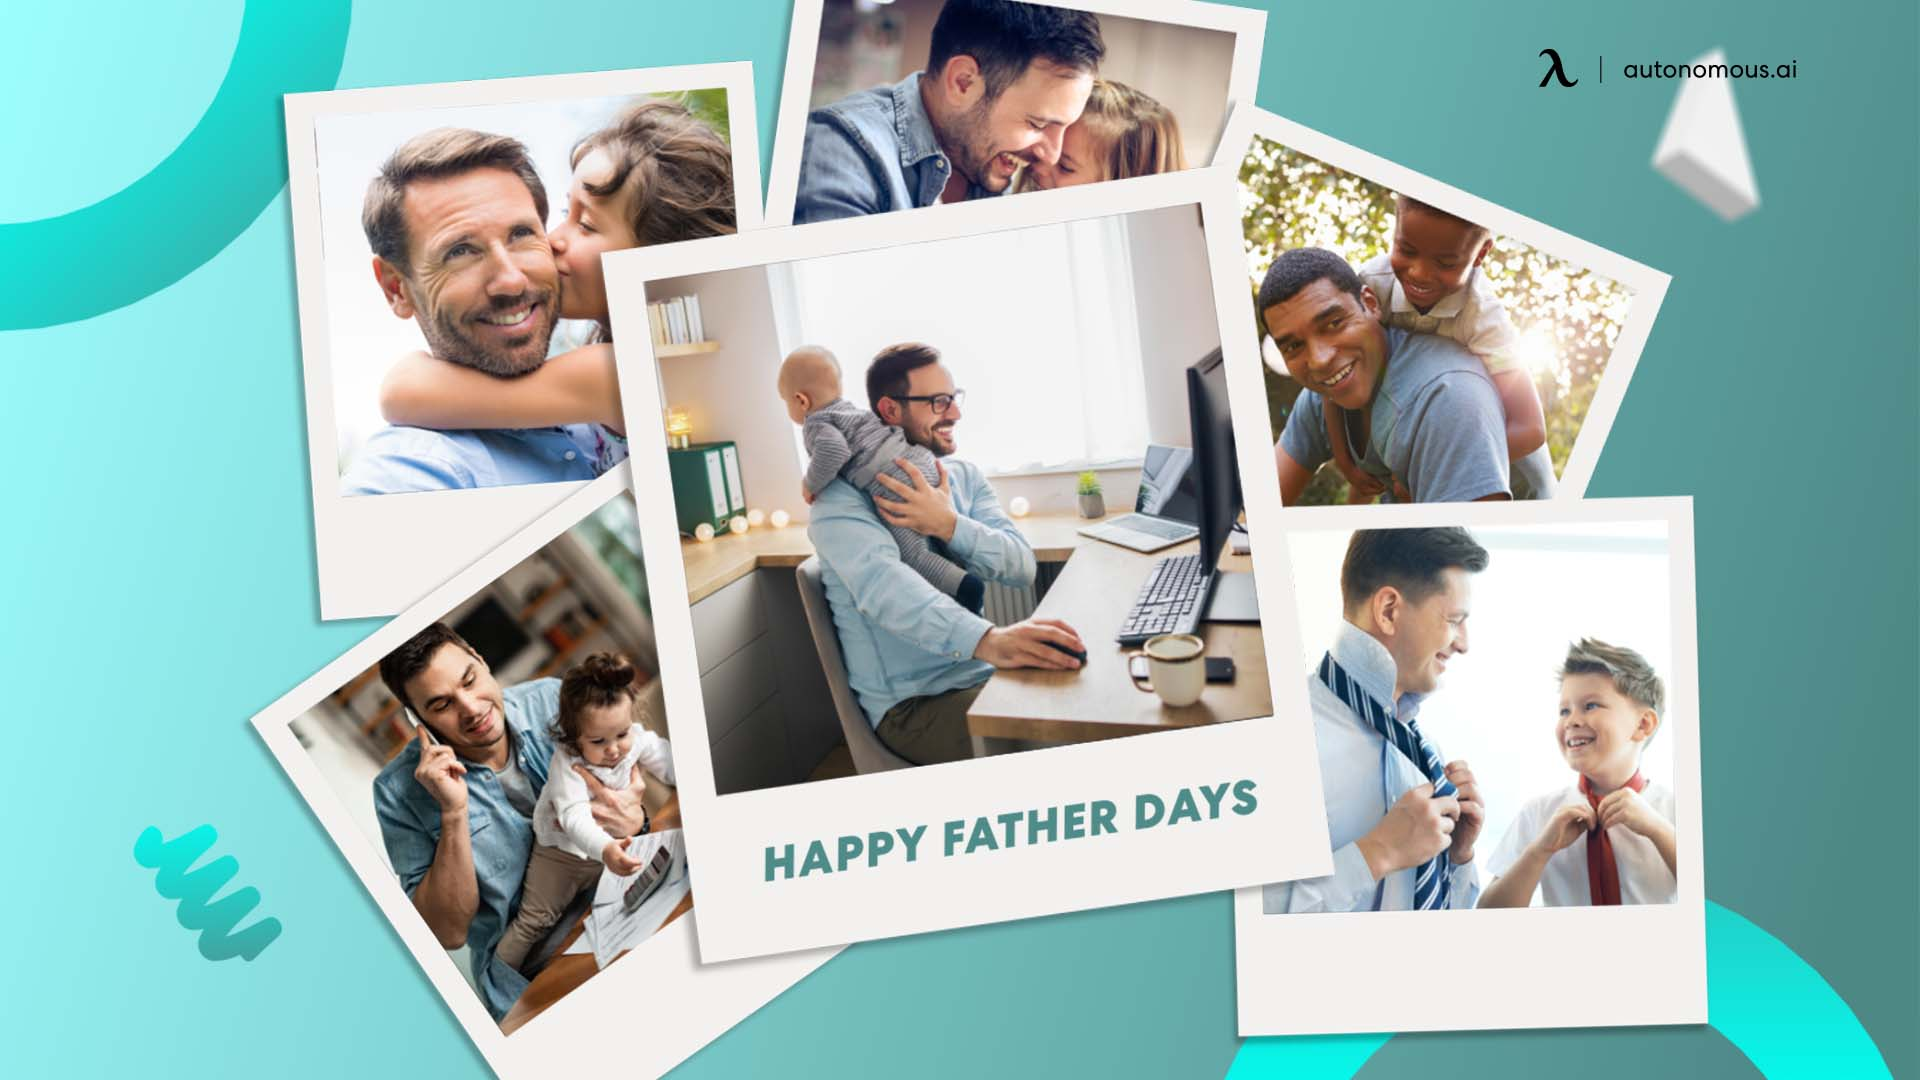 What to do this Father's Day, June 20, 2021?